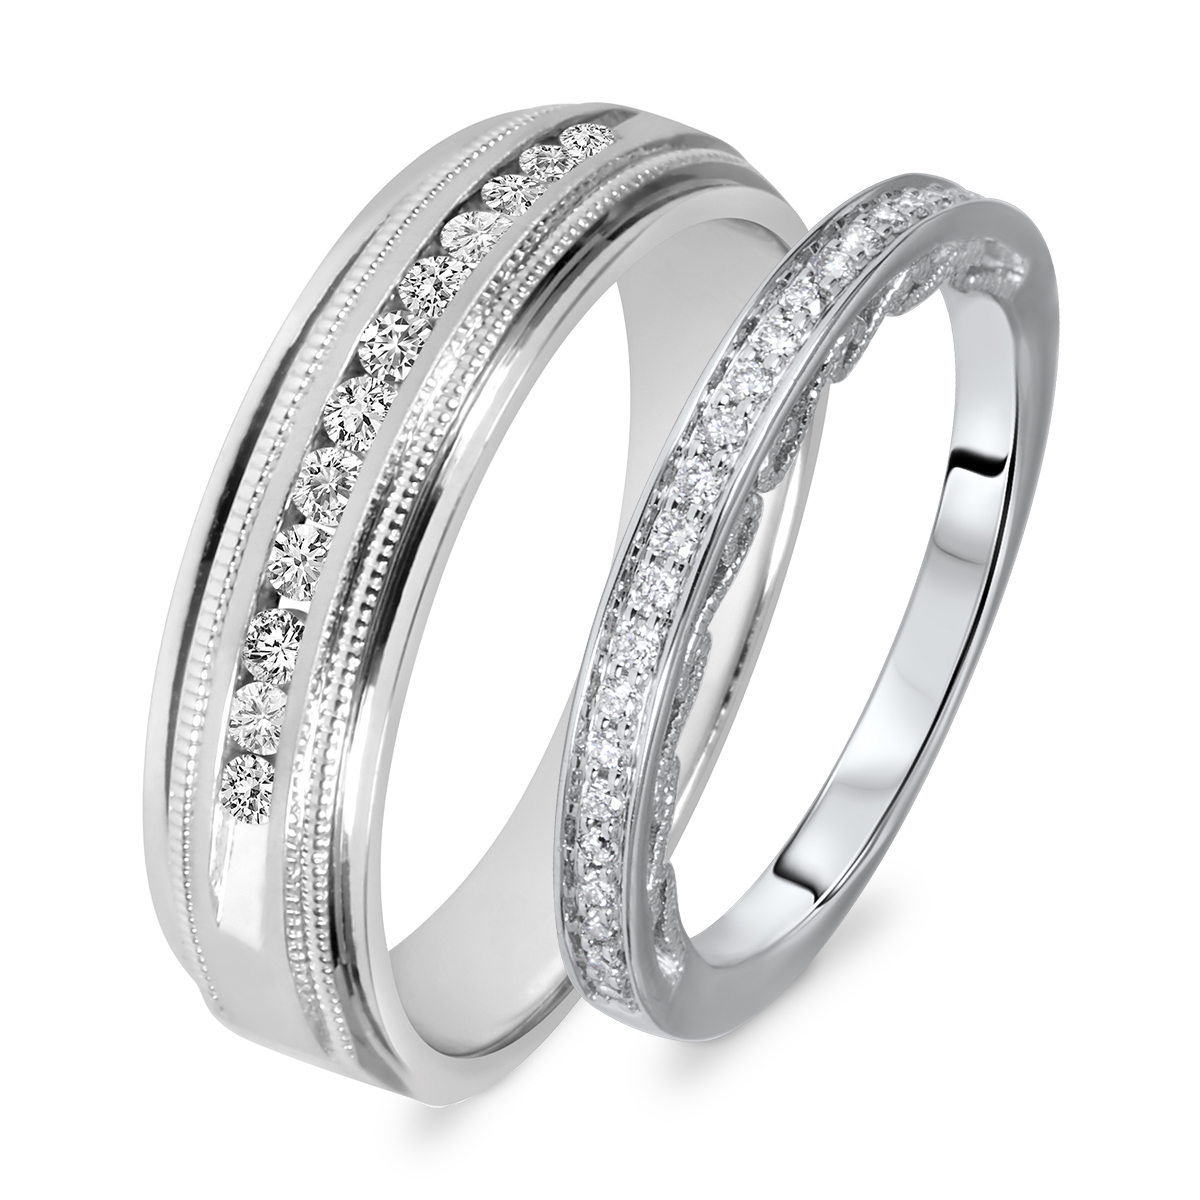 3 8 carat t w round cut diamond his and hers wedding band set 14k white gold